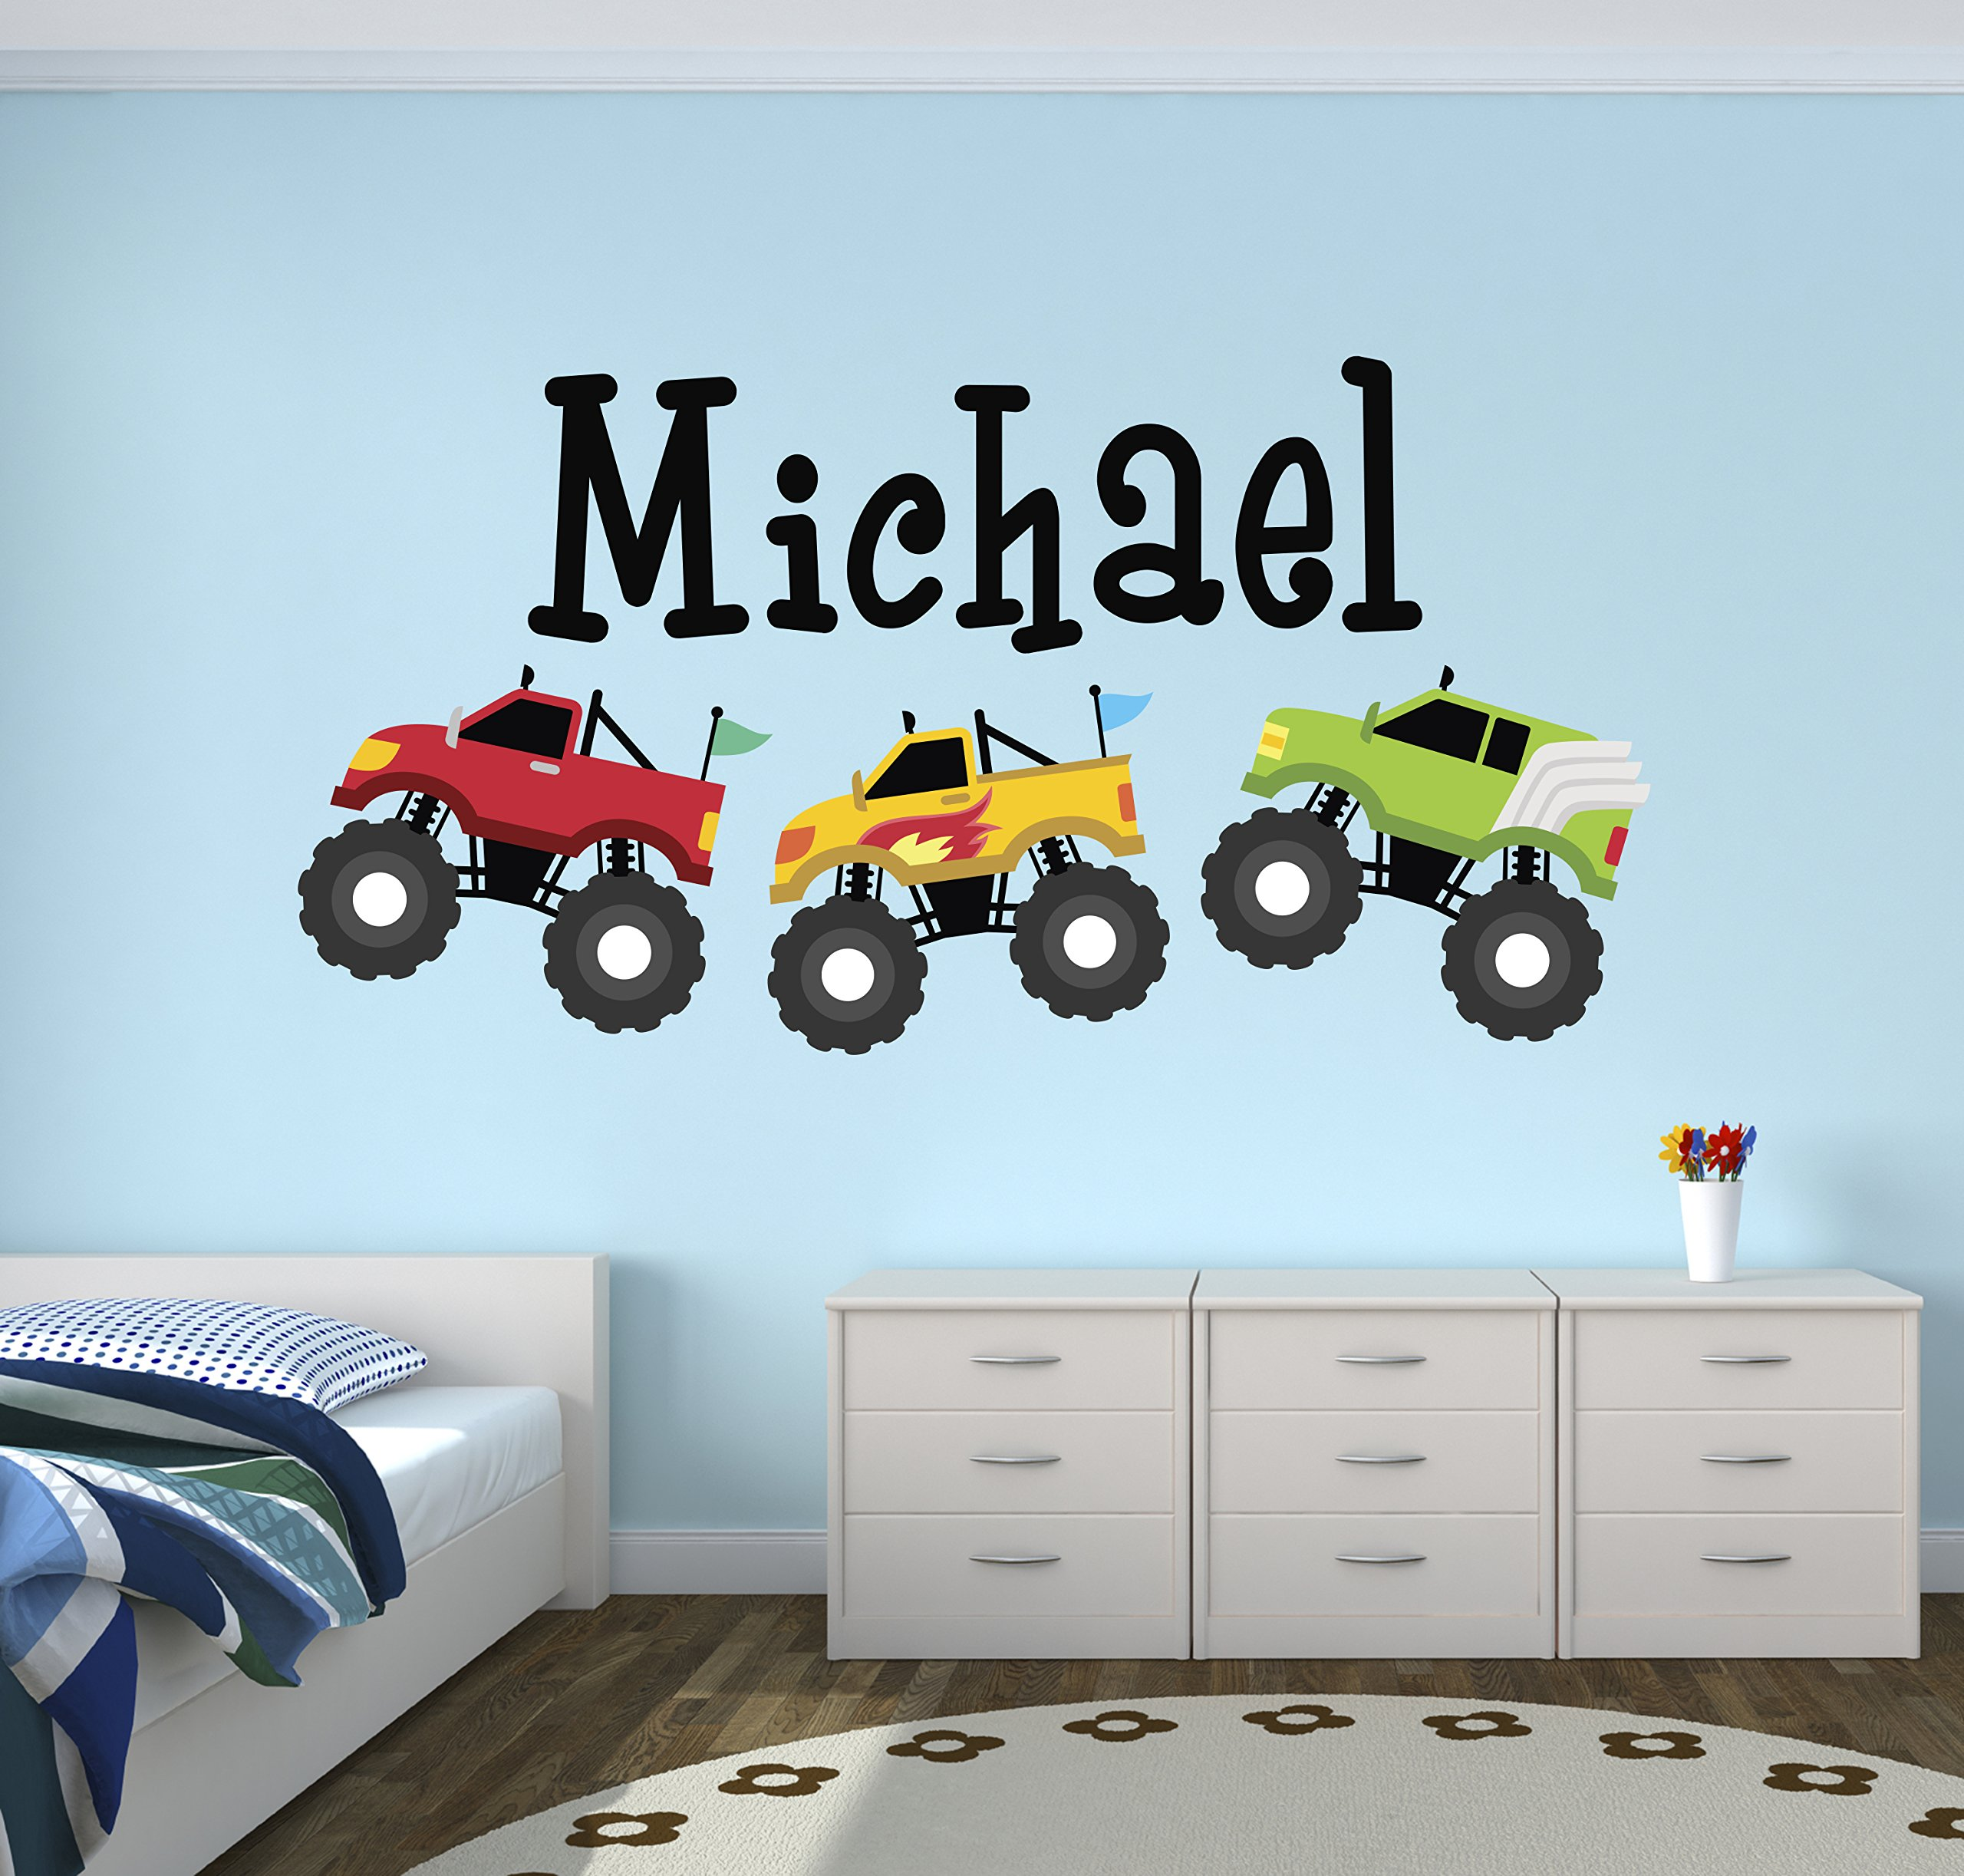 Personalized Trucks Name Wall Decal - Baby Boy Room Decor - Nursery Wall Decals - Trucks Art Vinyl Sticker by Decalzone Inc